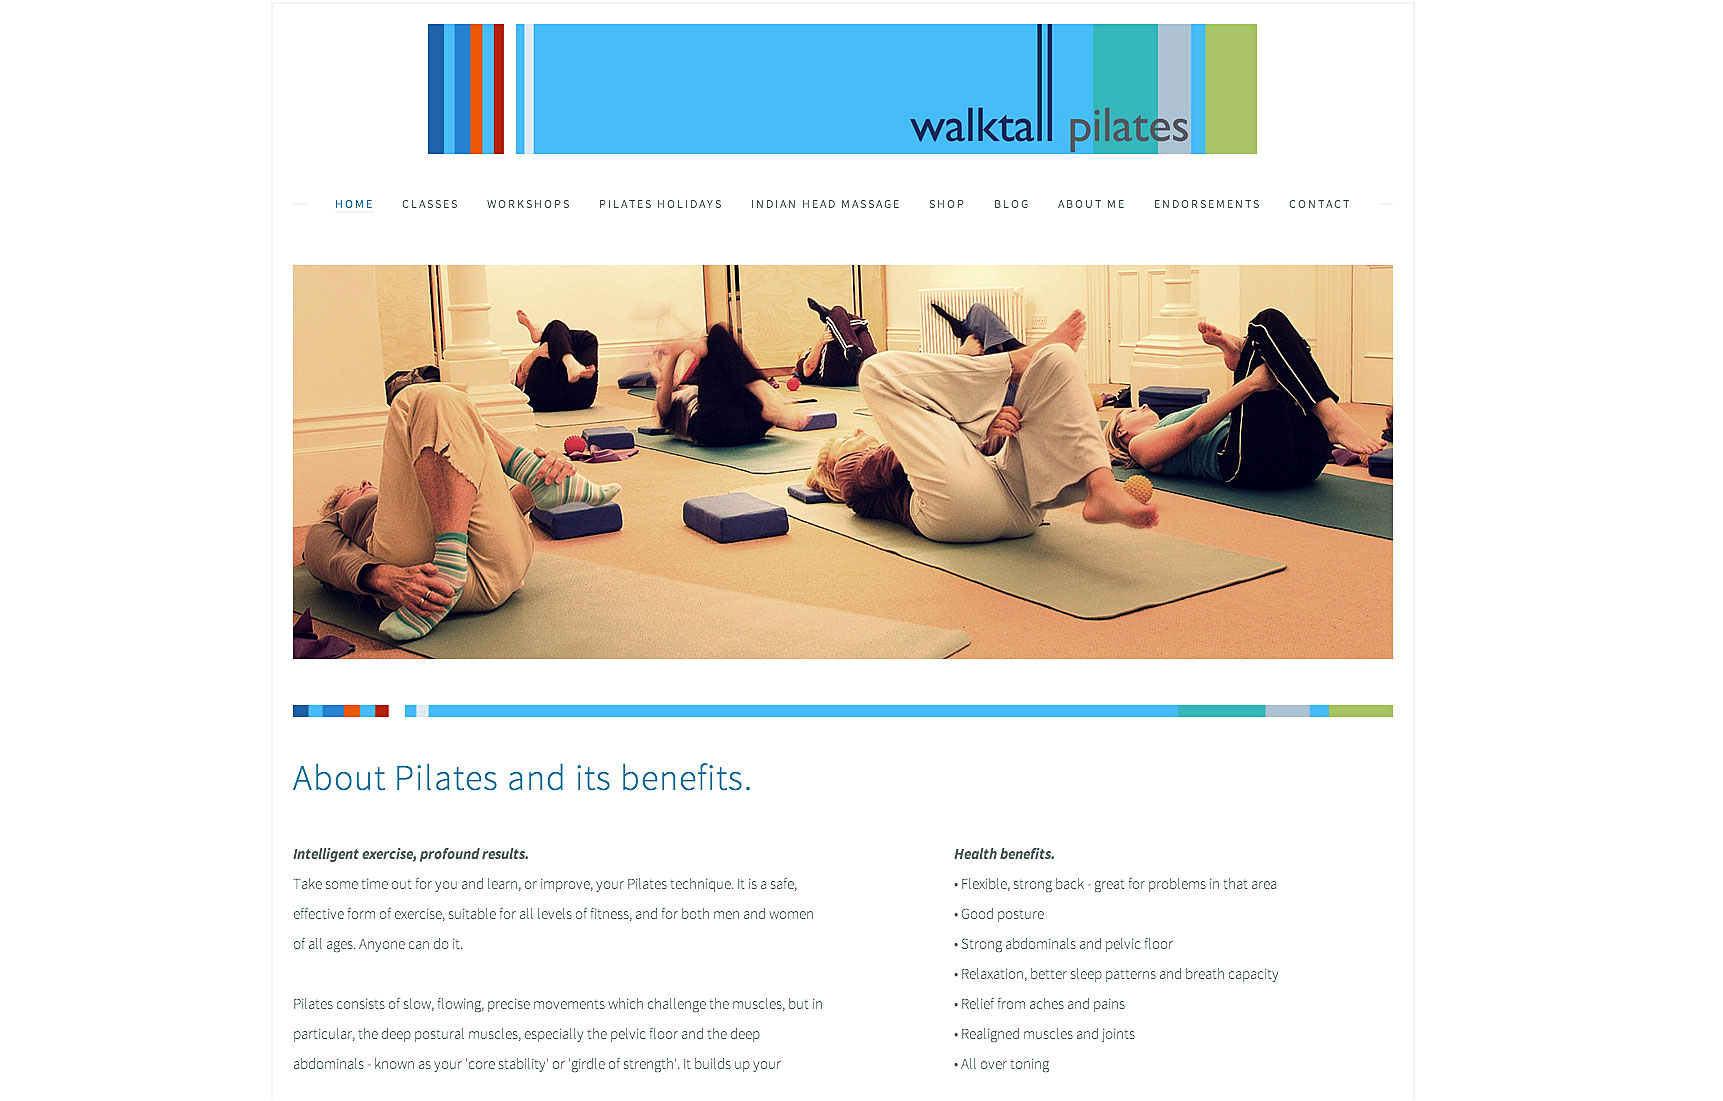 home page for website for pilates classes with logo and photograph of ladies on mats